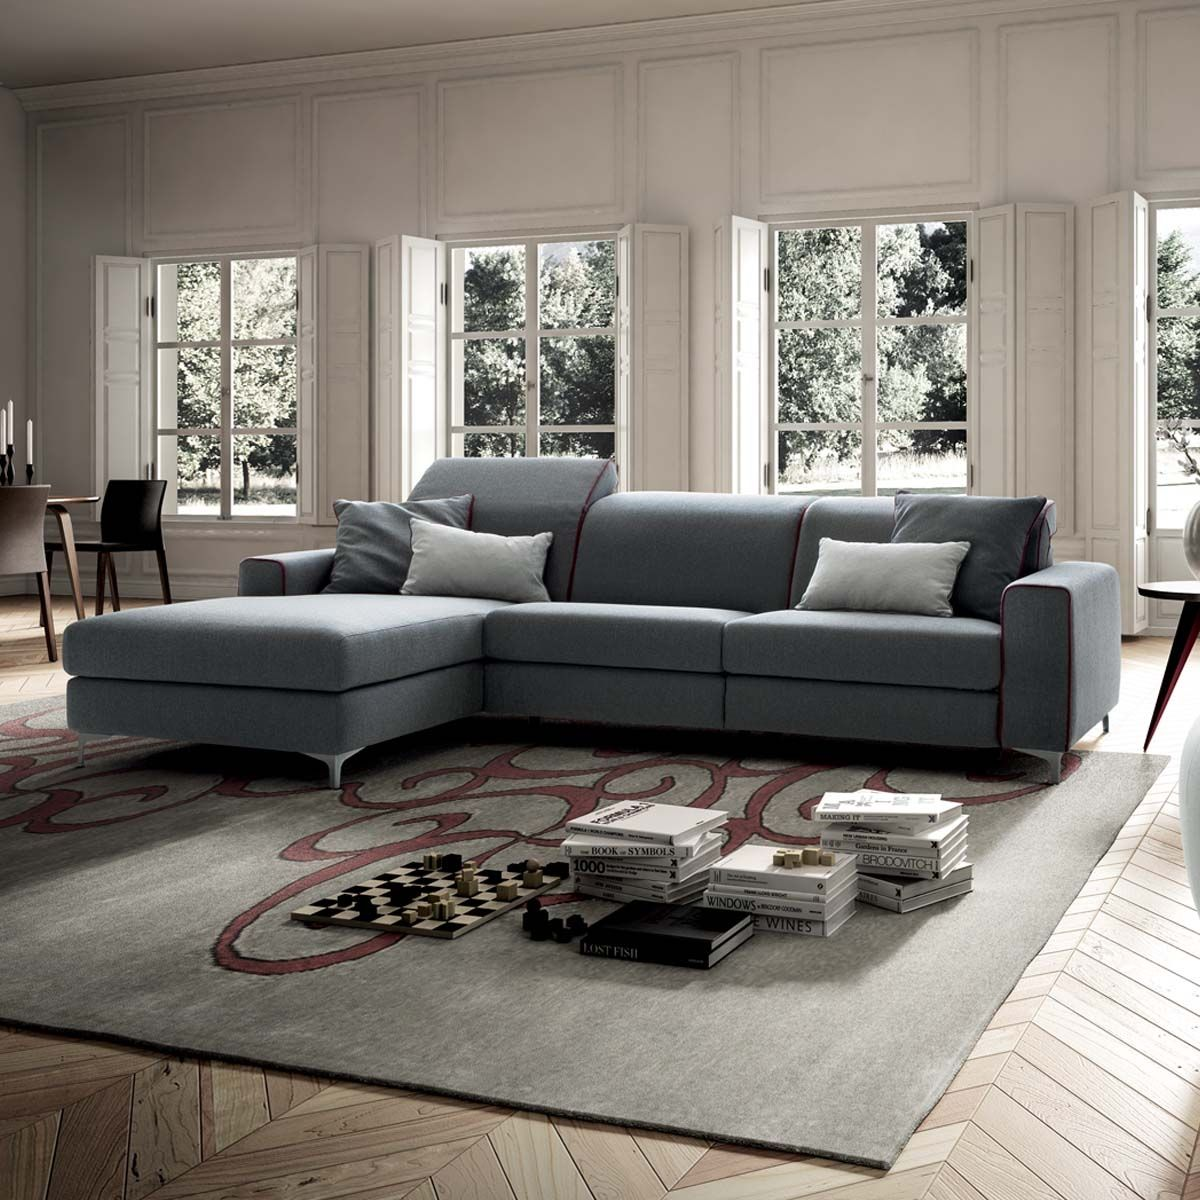 Divano con chaise longue Drive In - casarredostudio.it